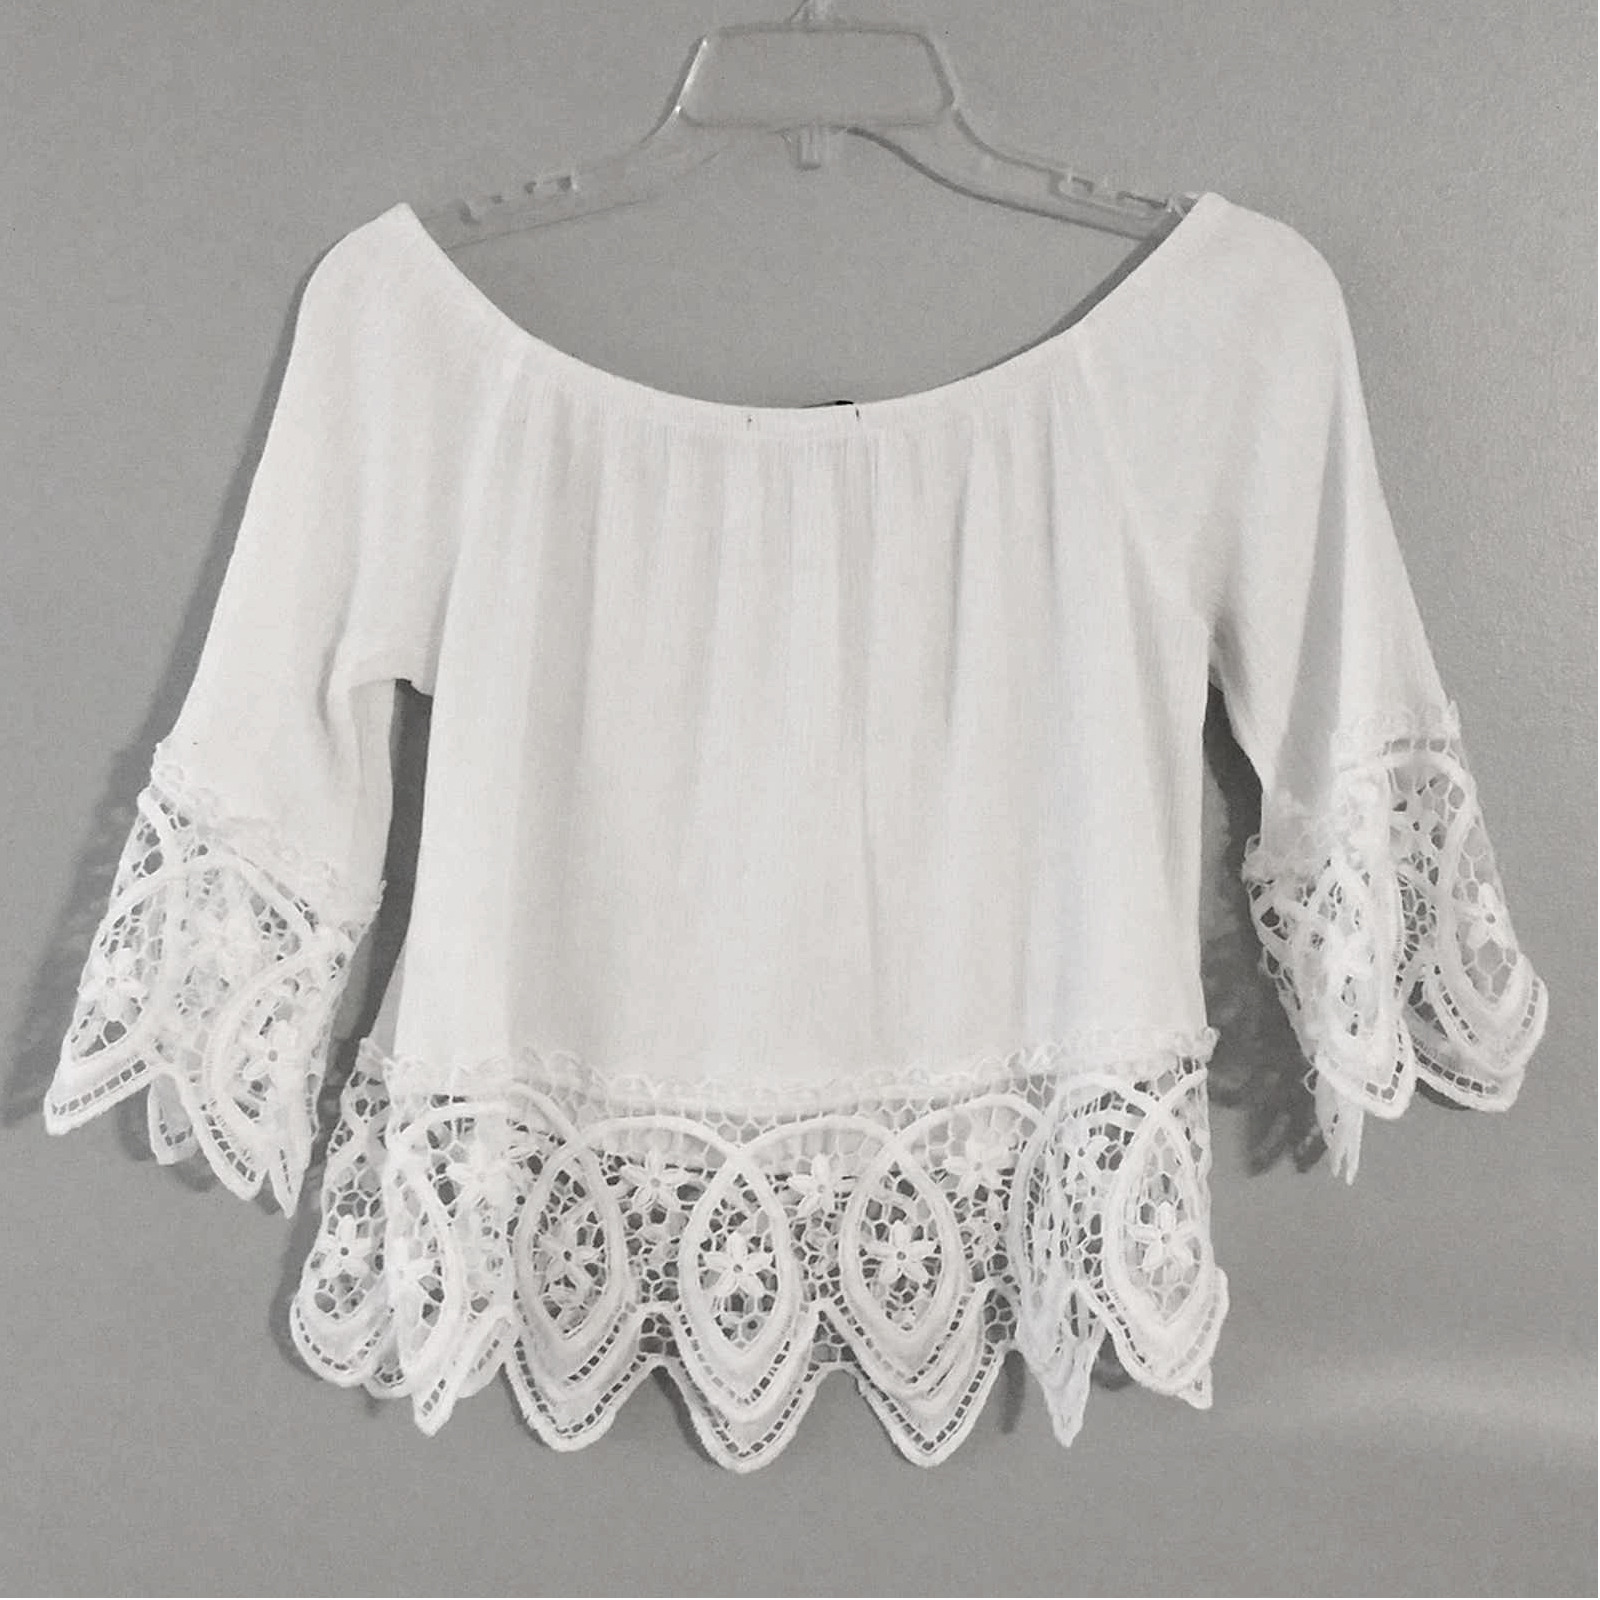 Ambiance White Lacey Fairycore crop top - image 2